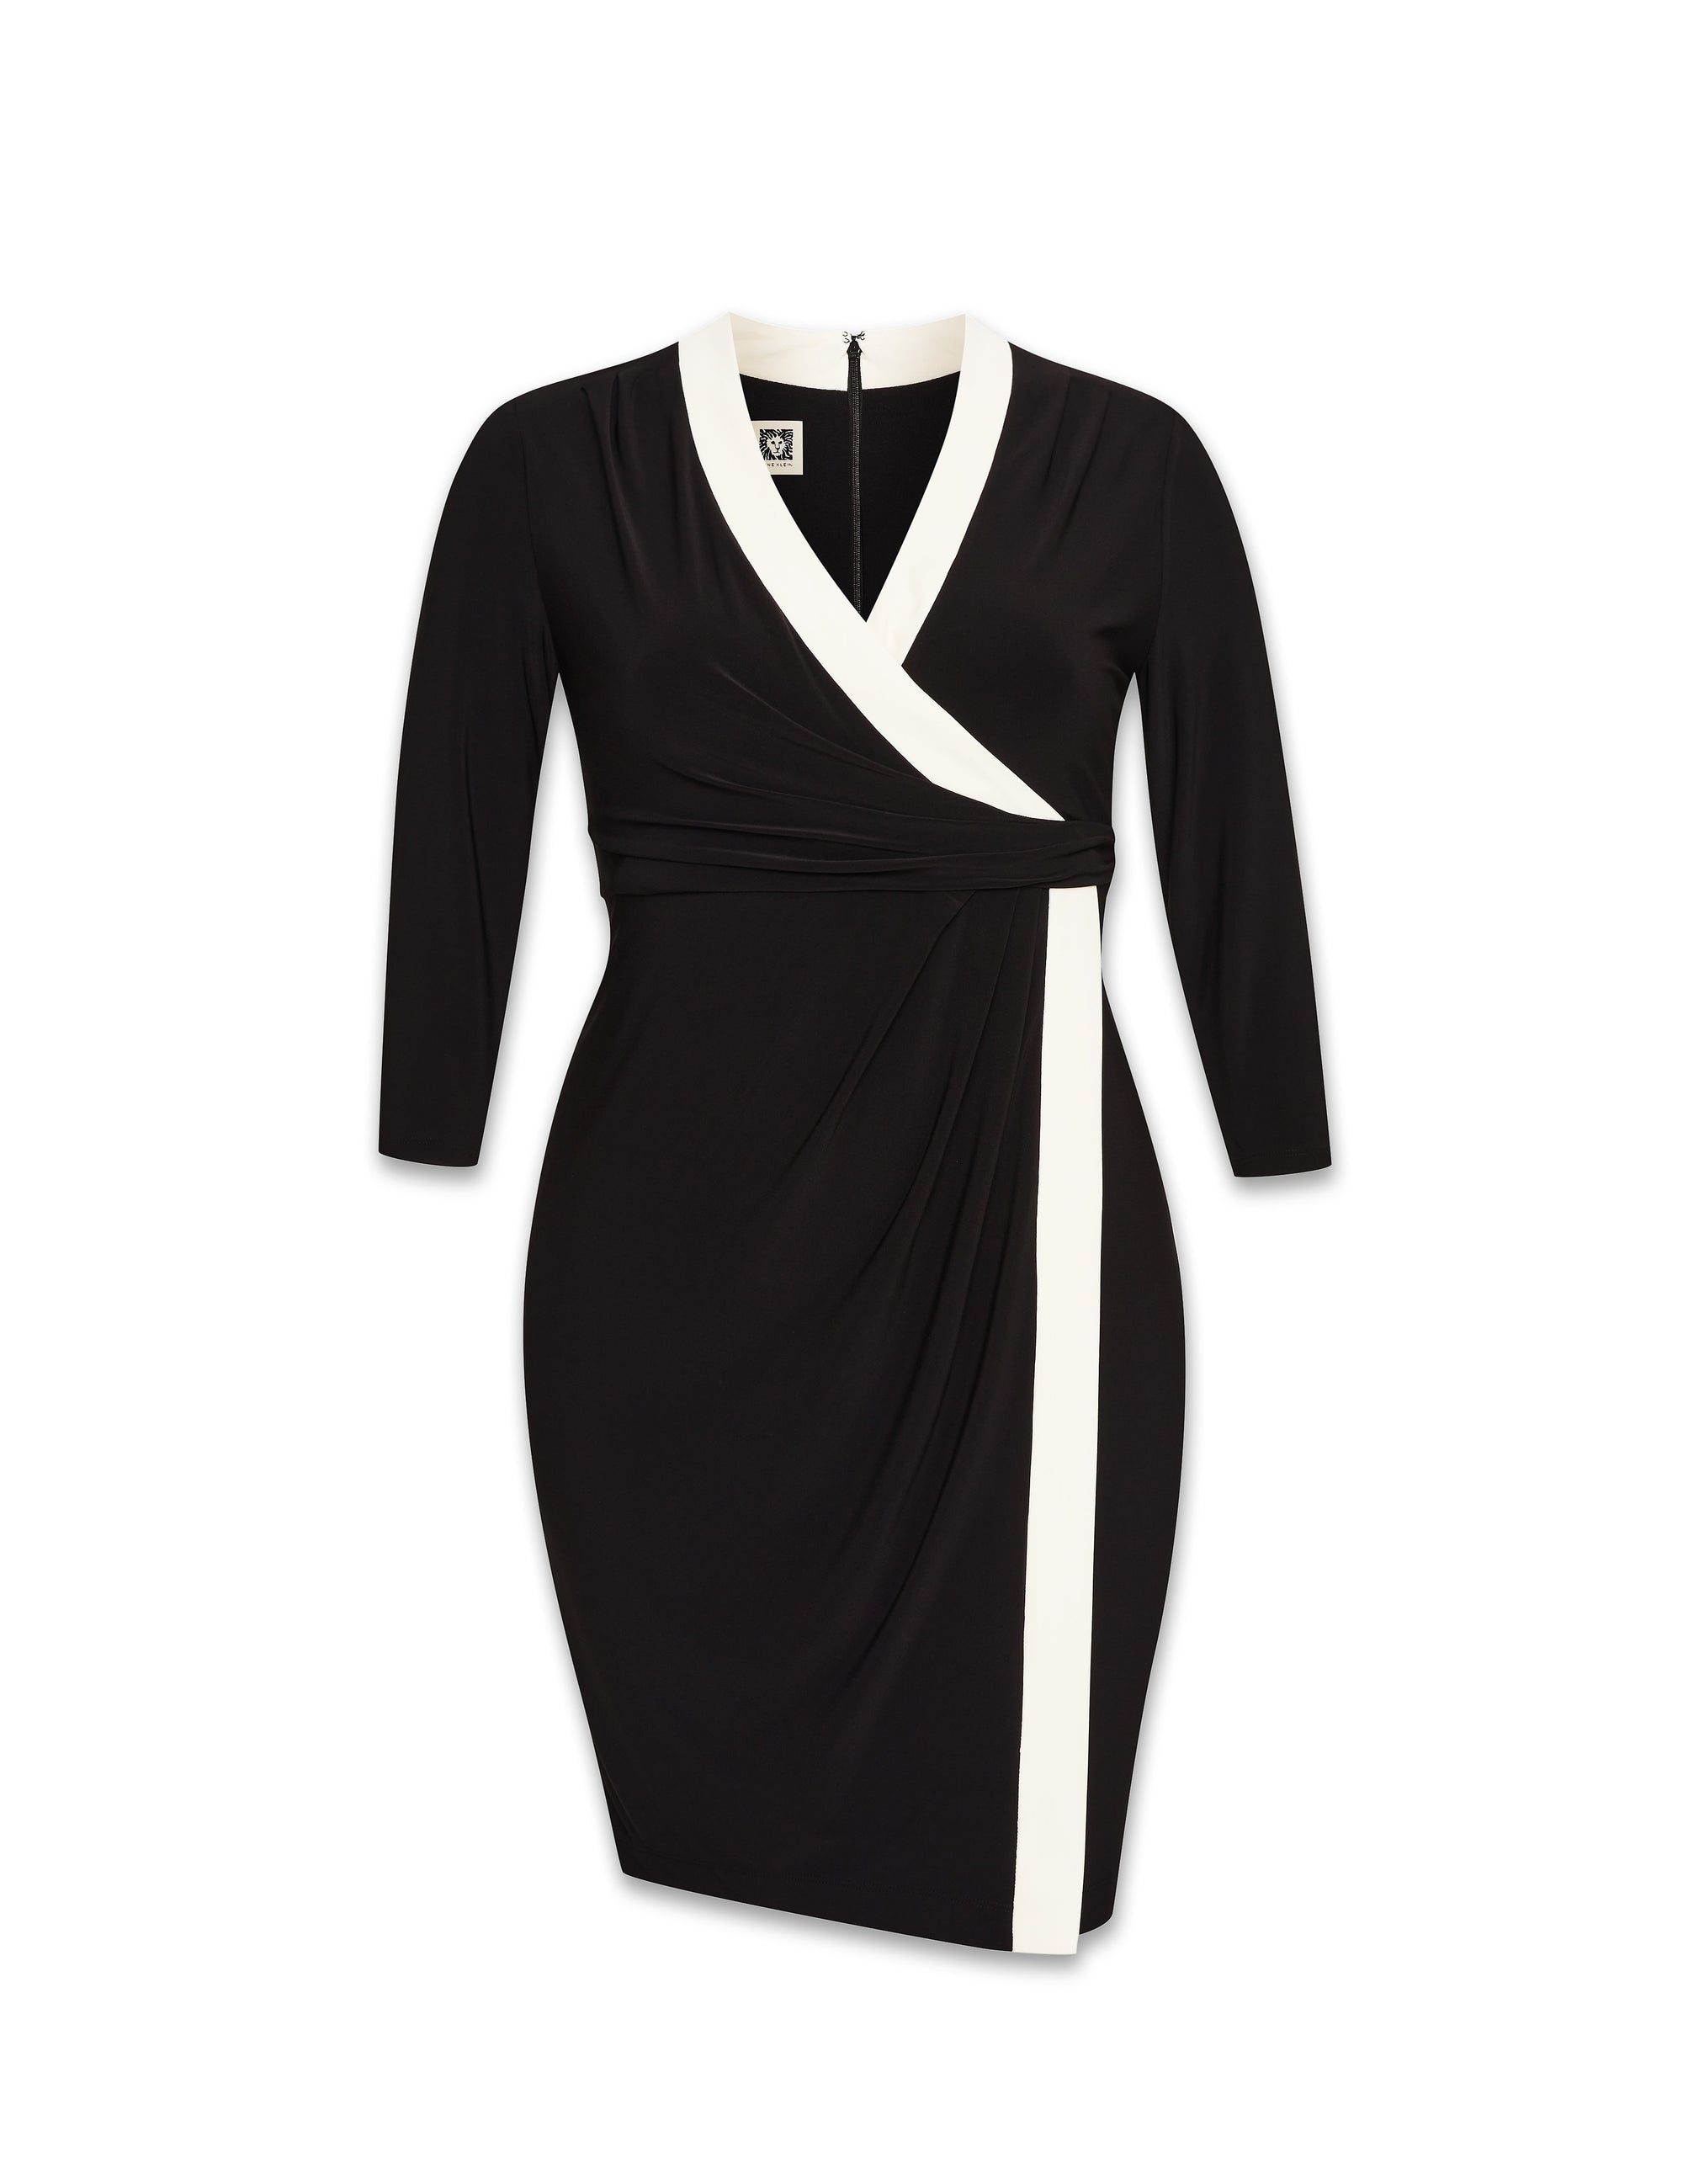 Anne Klein Black/White Colorblock Faux Wrap Dress